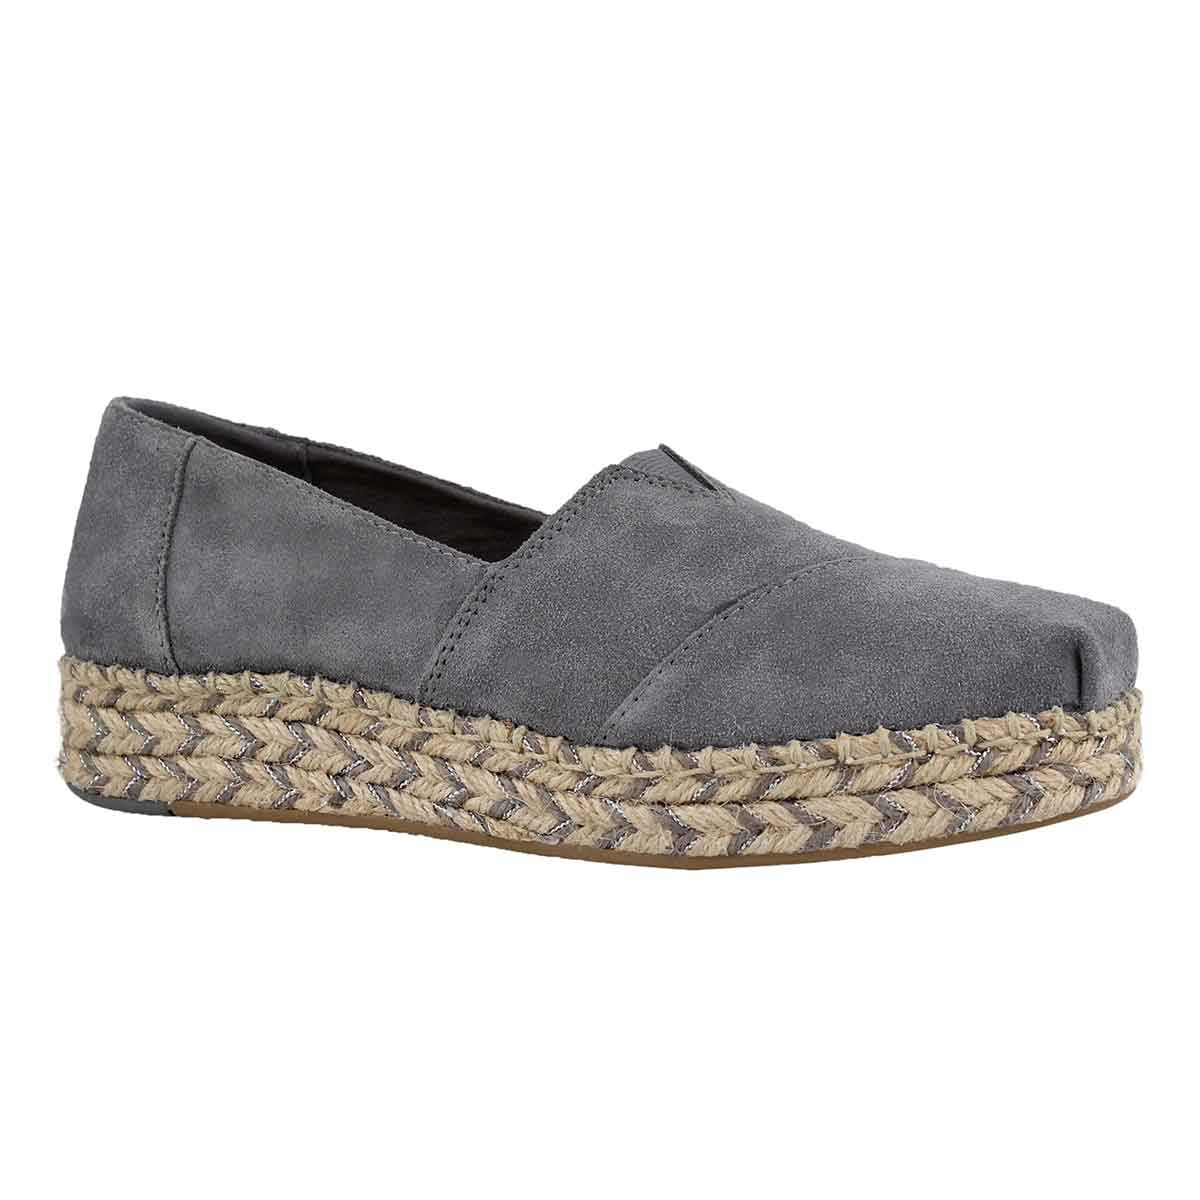 b4aaf21bf1a TOMS Women s PLATFORM ALPARGATA shade loafers Women s Casual Shoes Grey.  Lds Platform Alpargata shade loafer